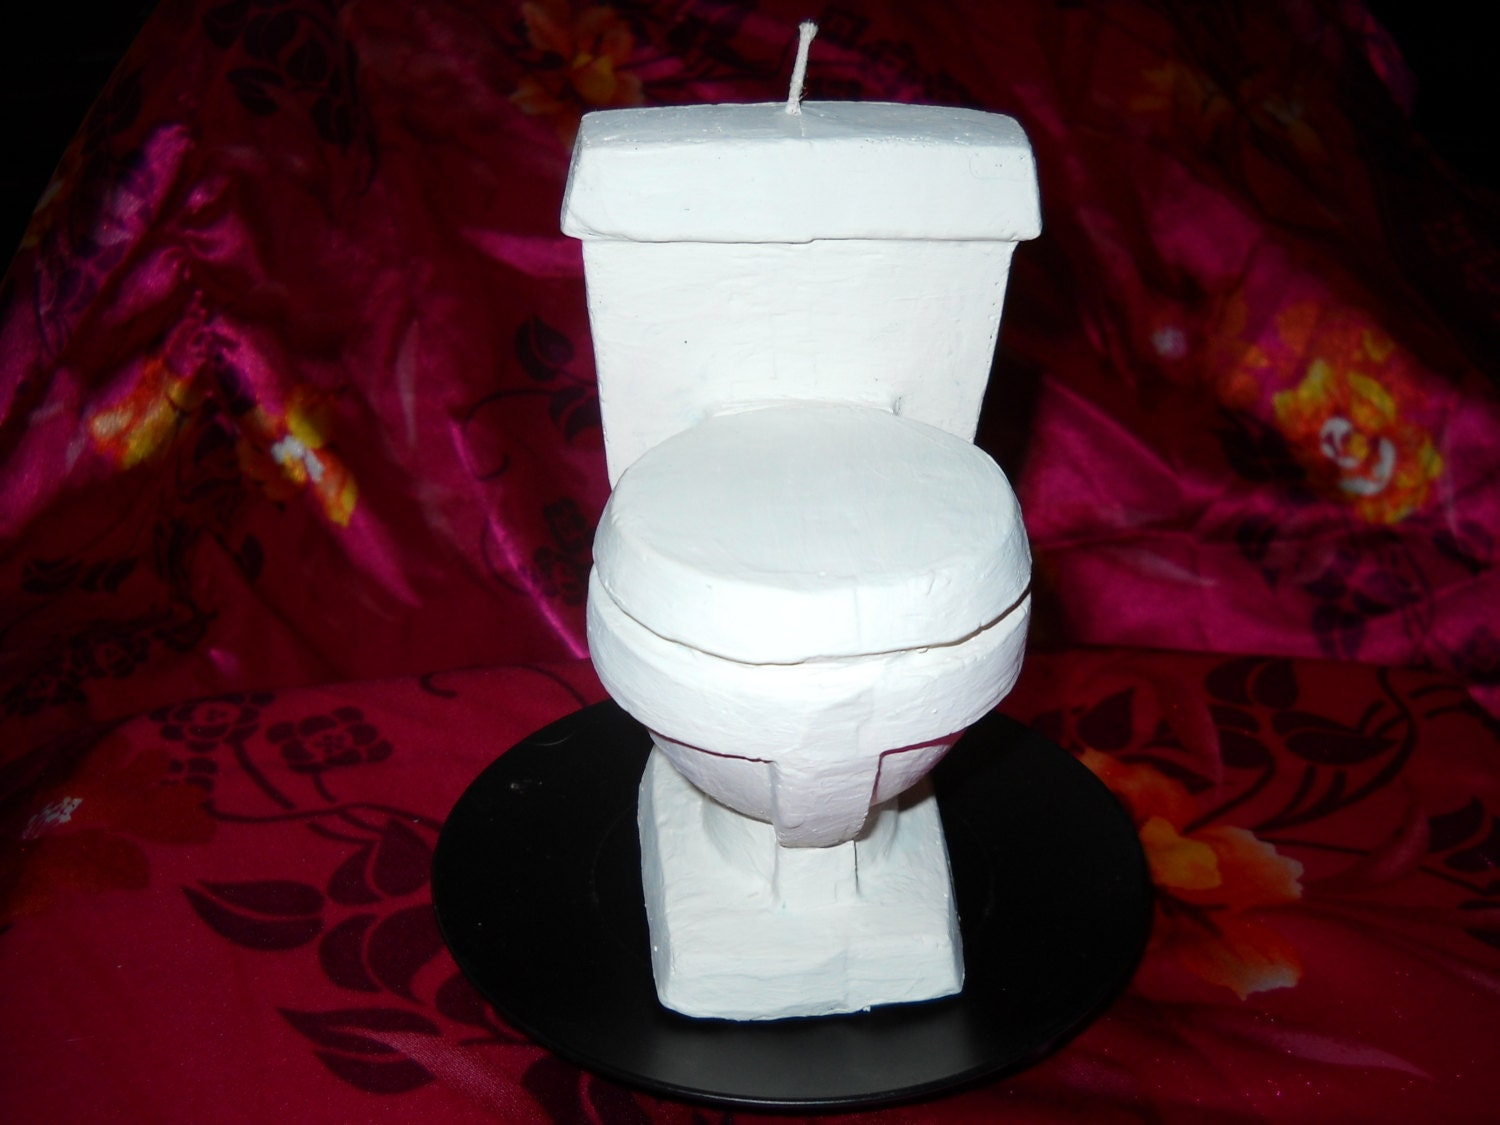 Toilet candle bathroom decor toilet tank topper gift ideas for Bathroom decor with candles